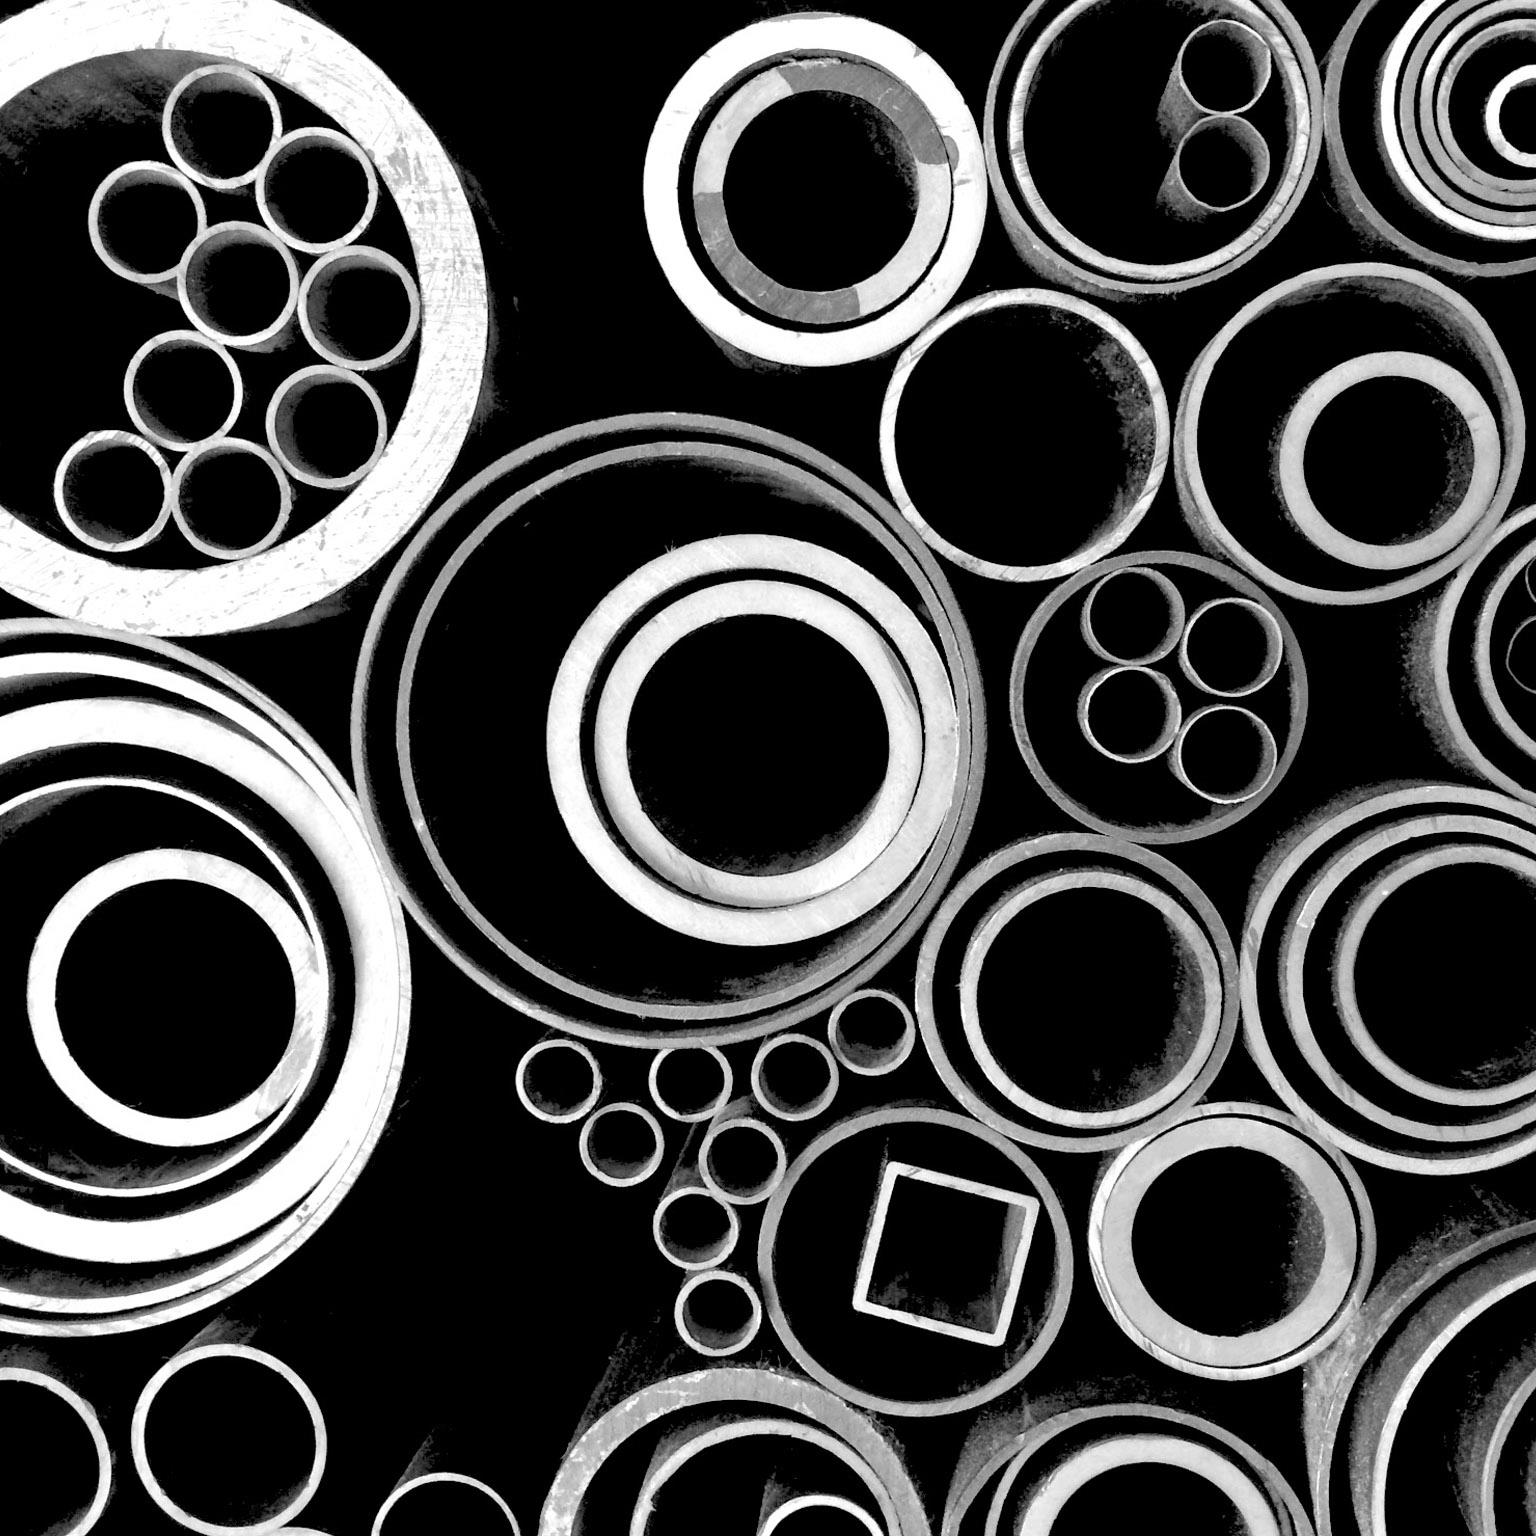 How benchmarking can improve cost competitiveness in steel